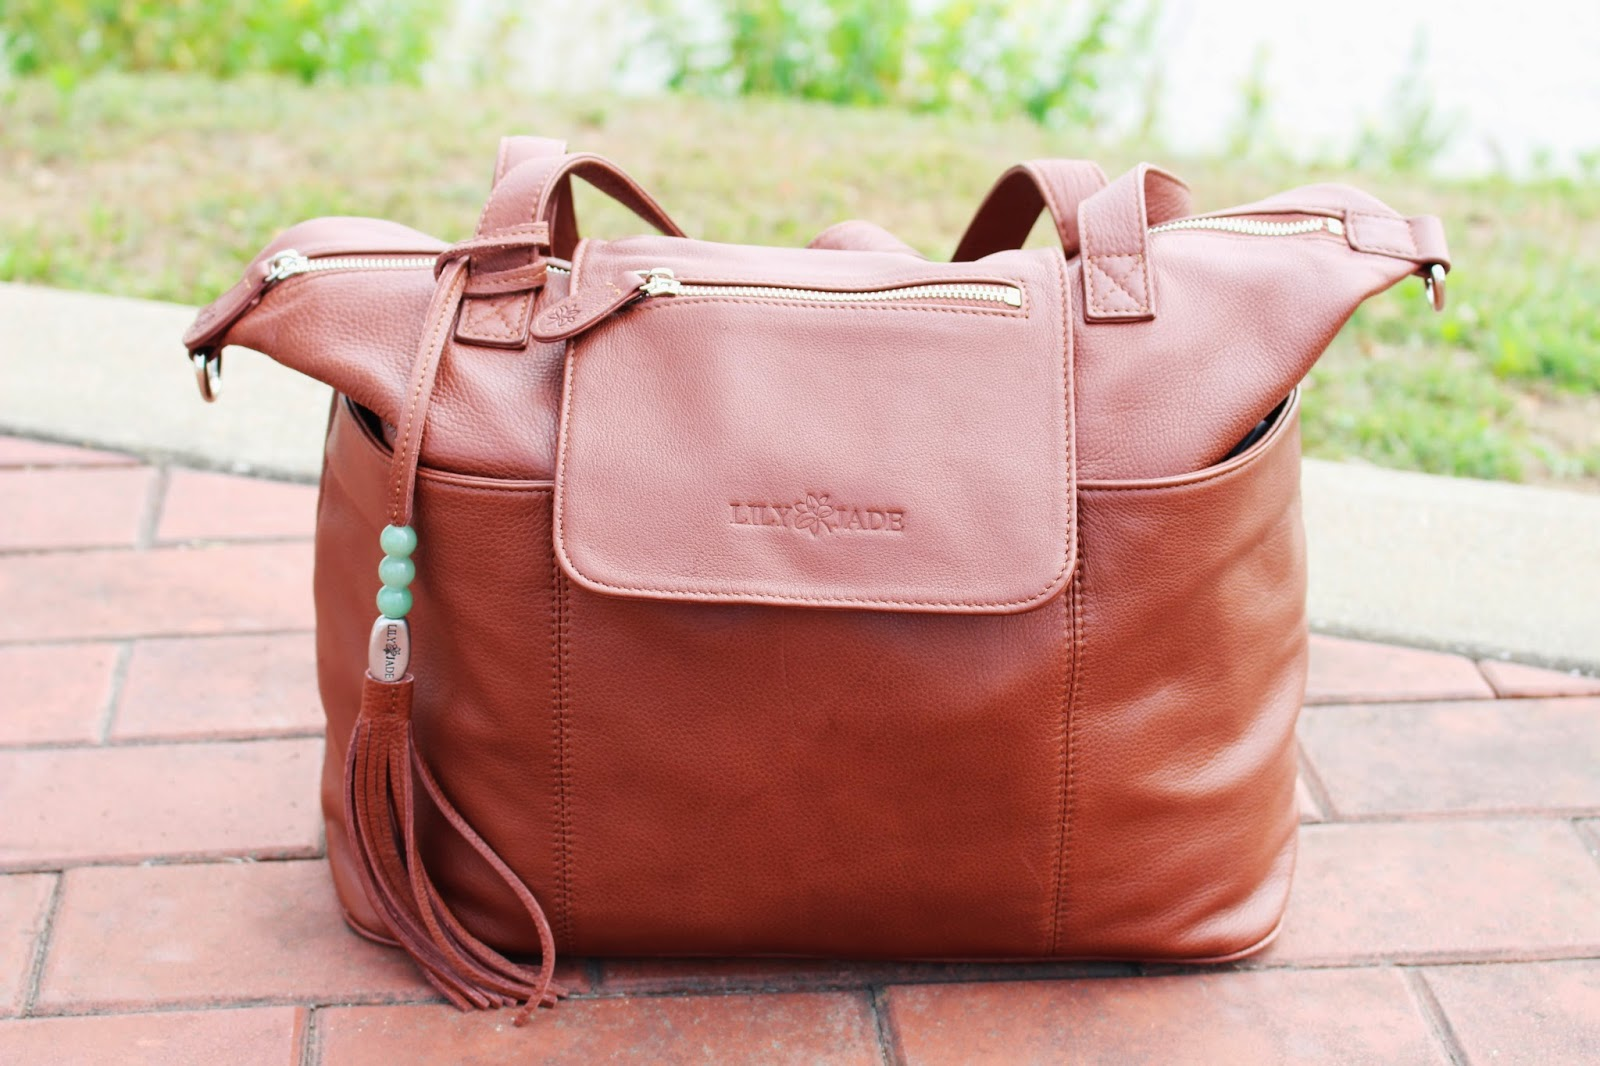 927254dd17df Well thank goodness I found Lily Jade Designer Diaper Bags. Not only does  it not look like a diaper bag